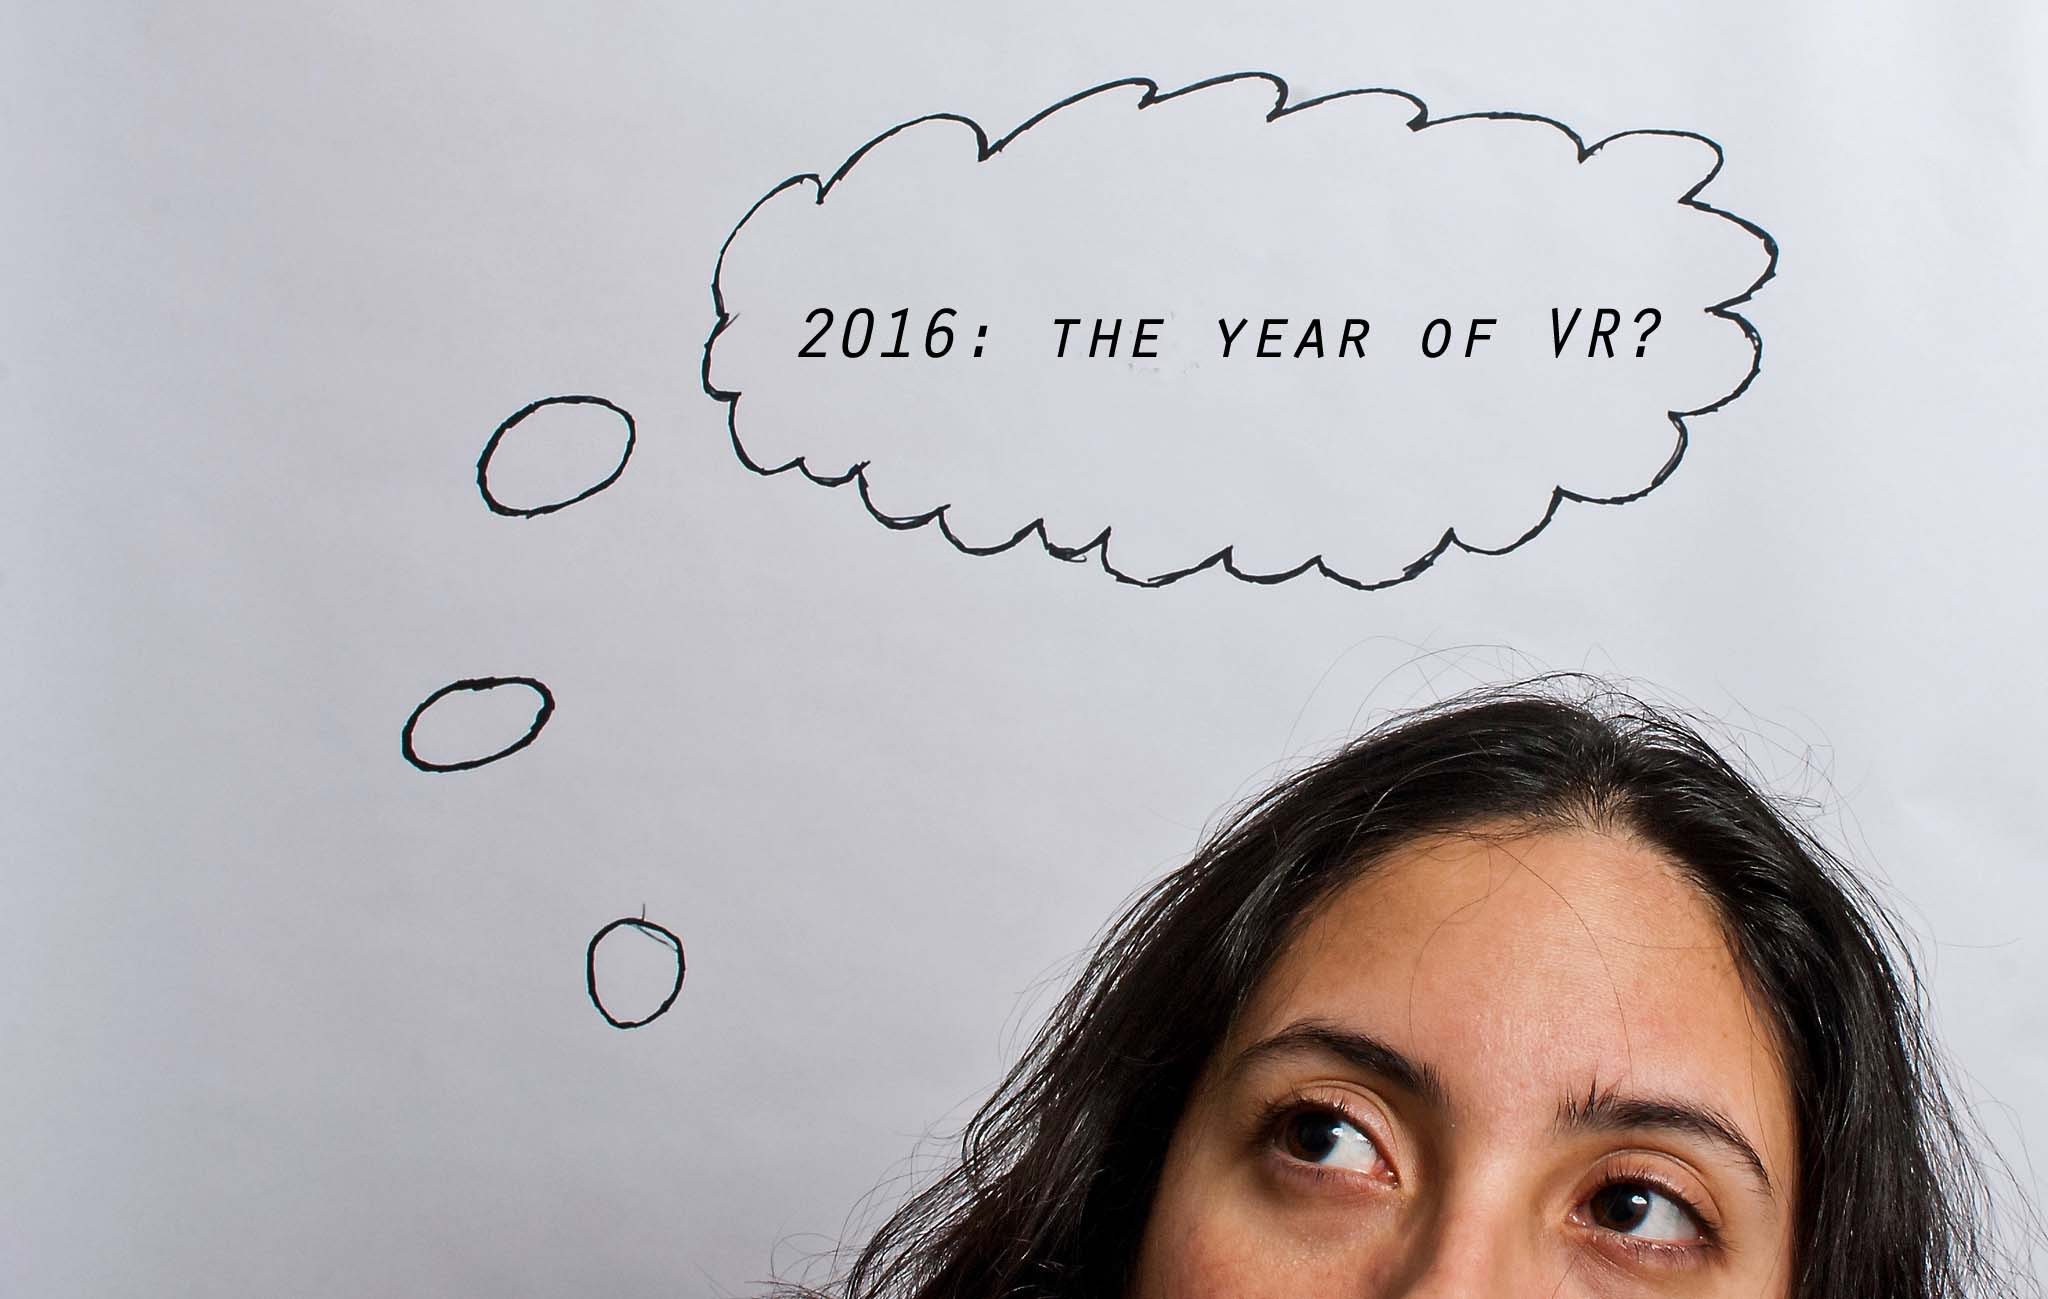 2016 will probably NOT be the year of VR